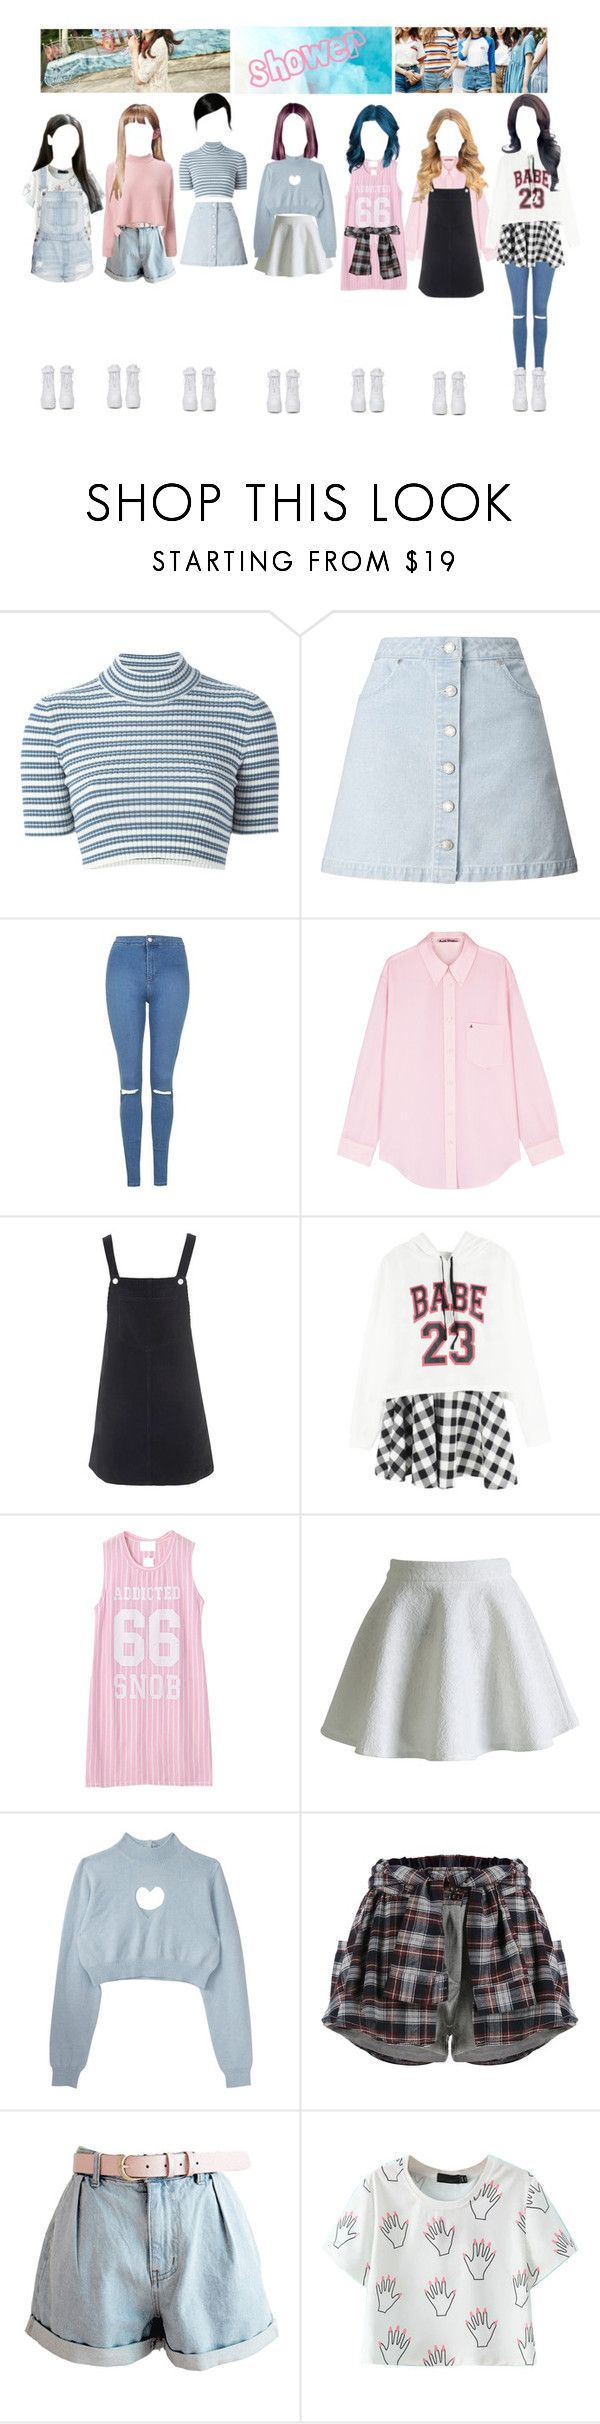 """""""DXPE Comeback Single Teaser"""" by irenejoyminzz ❤ liked on Polyvore featuring Alessandra Rich, Miss Selfridge, Topshop, Acne Studios, Chicnova Fashion, Chicwish and VIVETTA"""